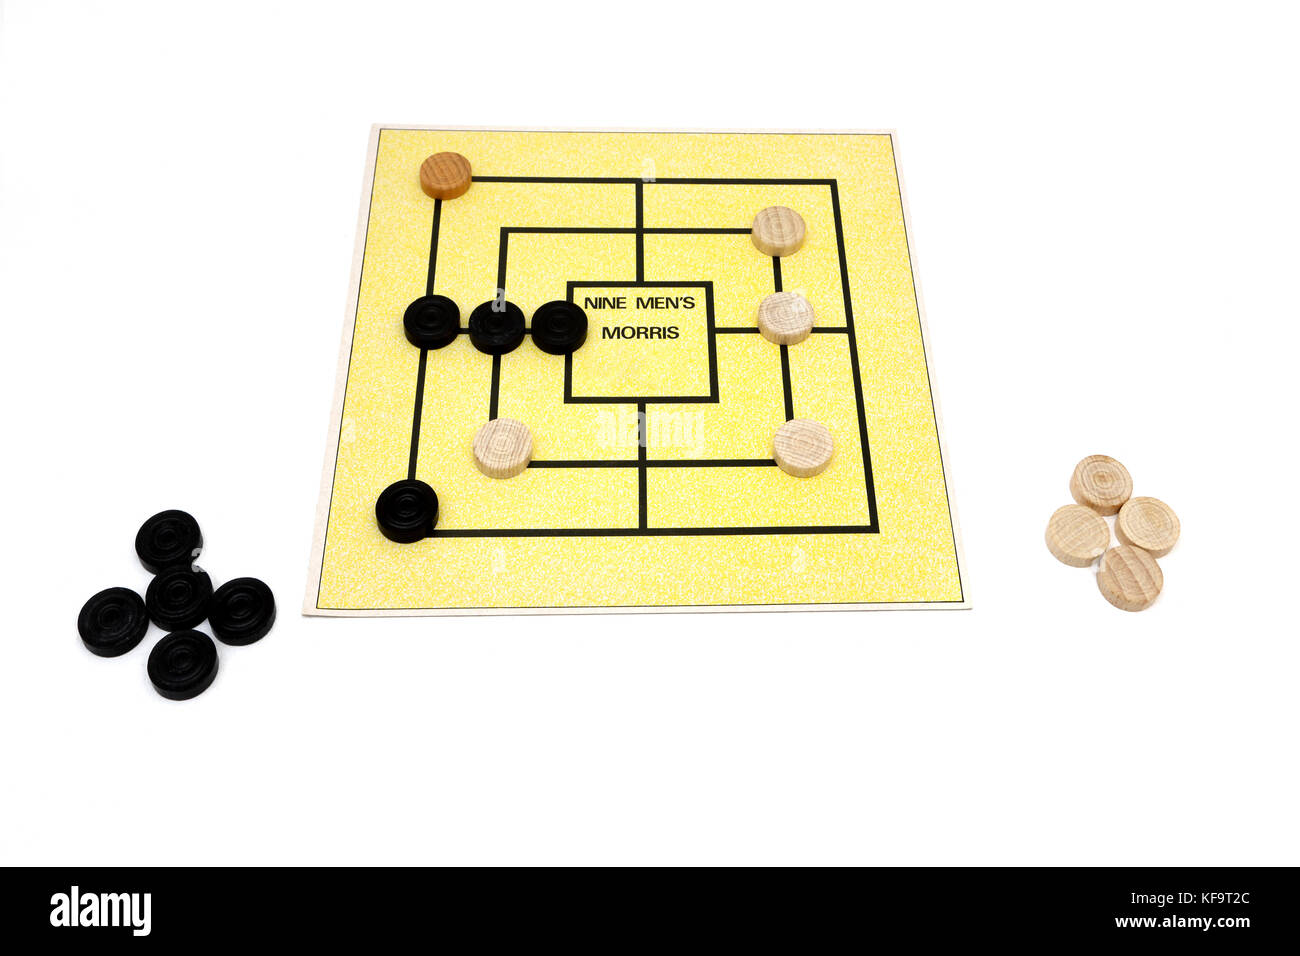 Nine Men's Morris Board Game and Pieces - Stock Image